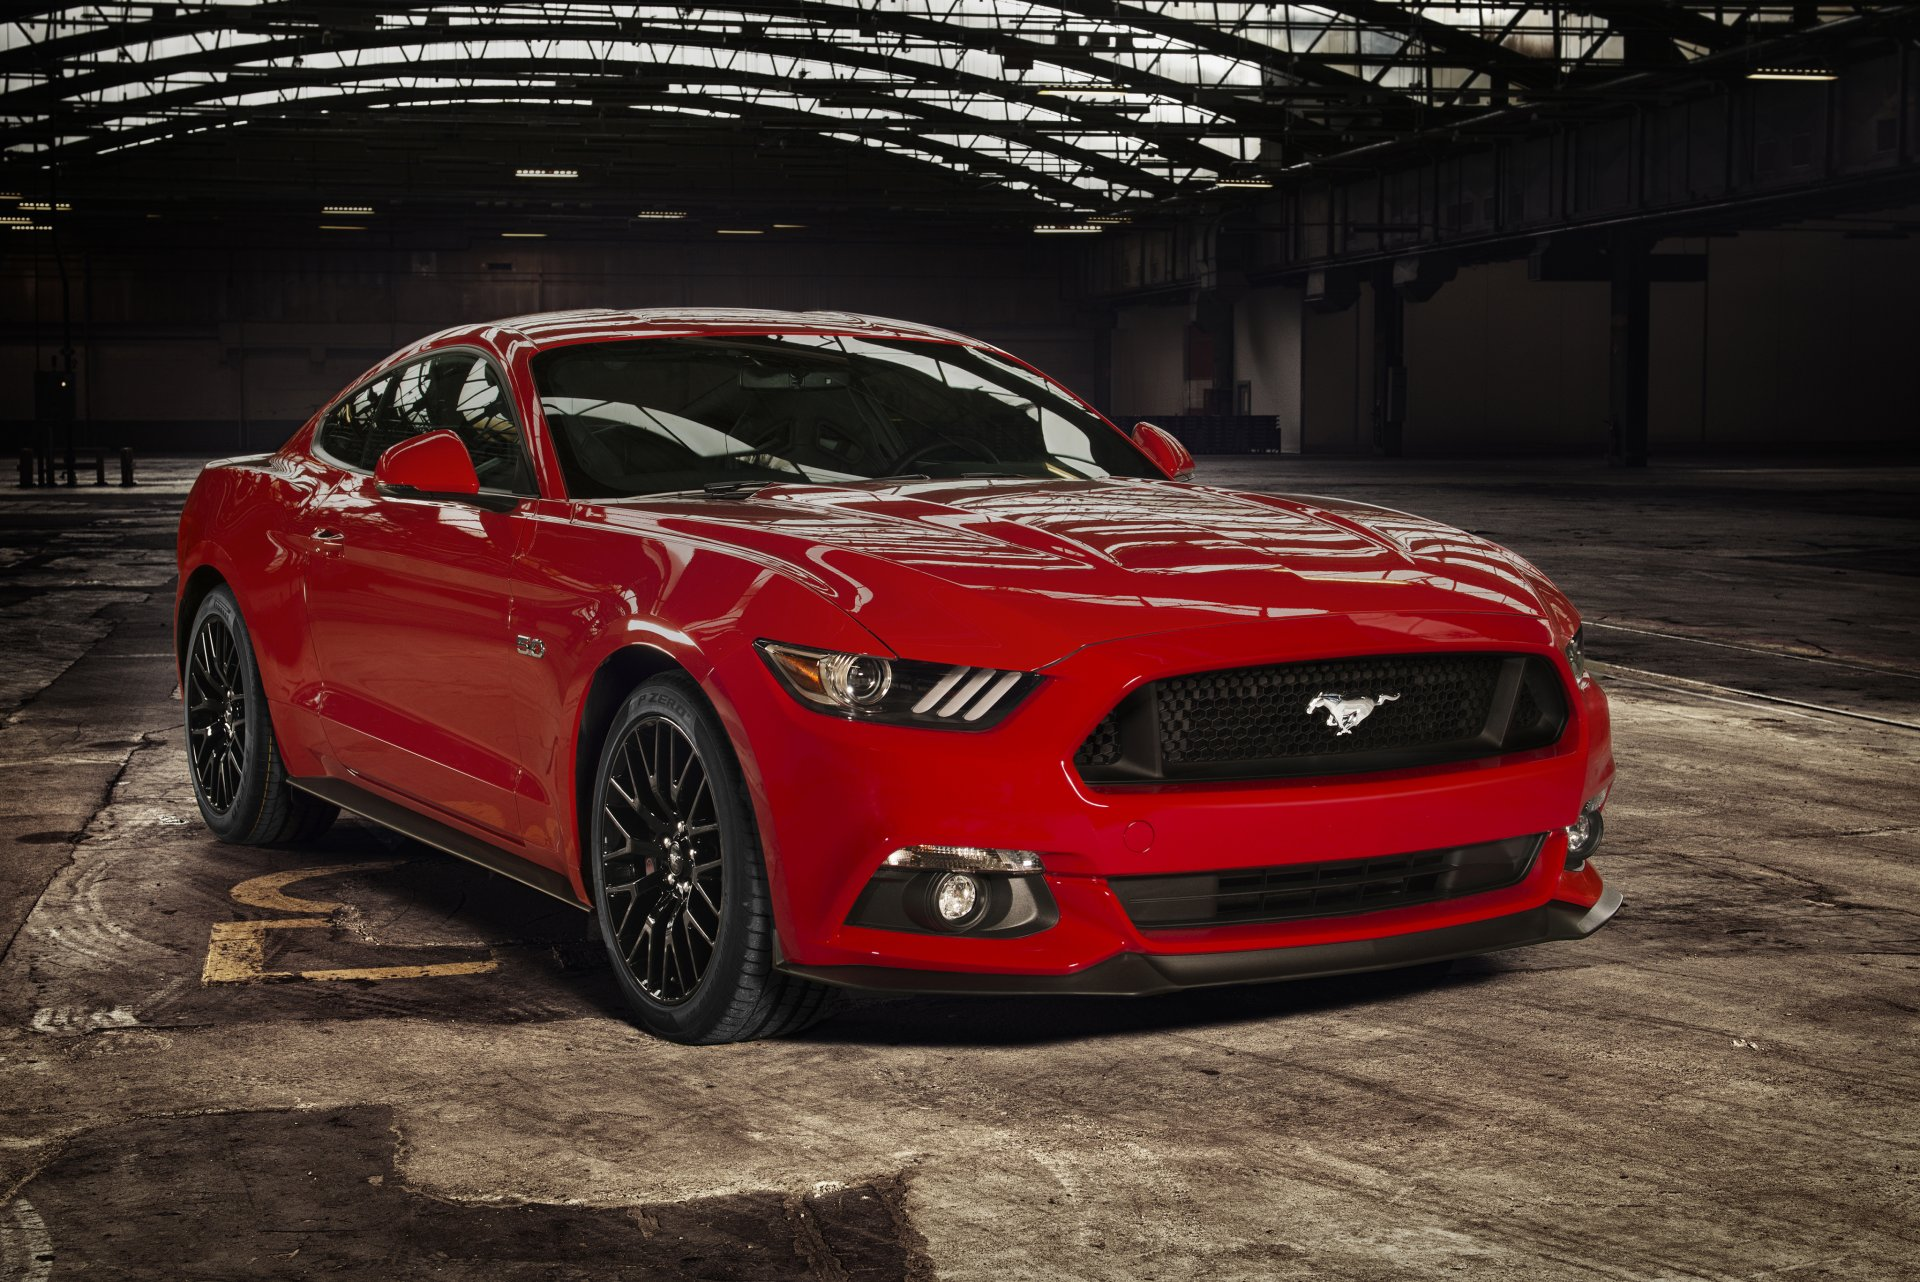 2015 Ford Mustang Coupe EU-spec форд мустанг купе